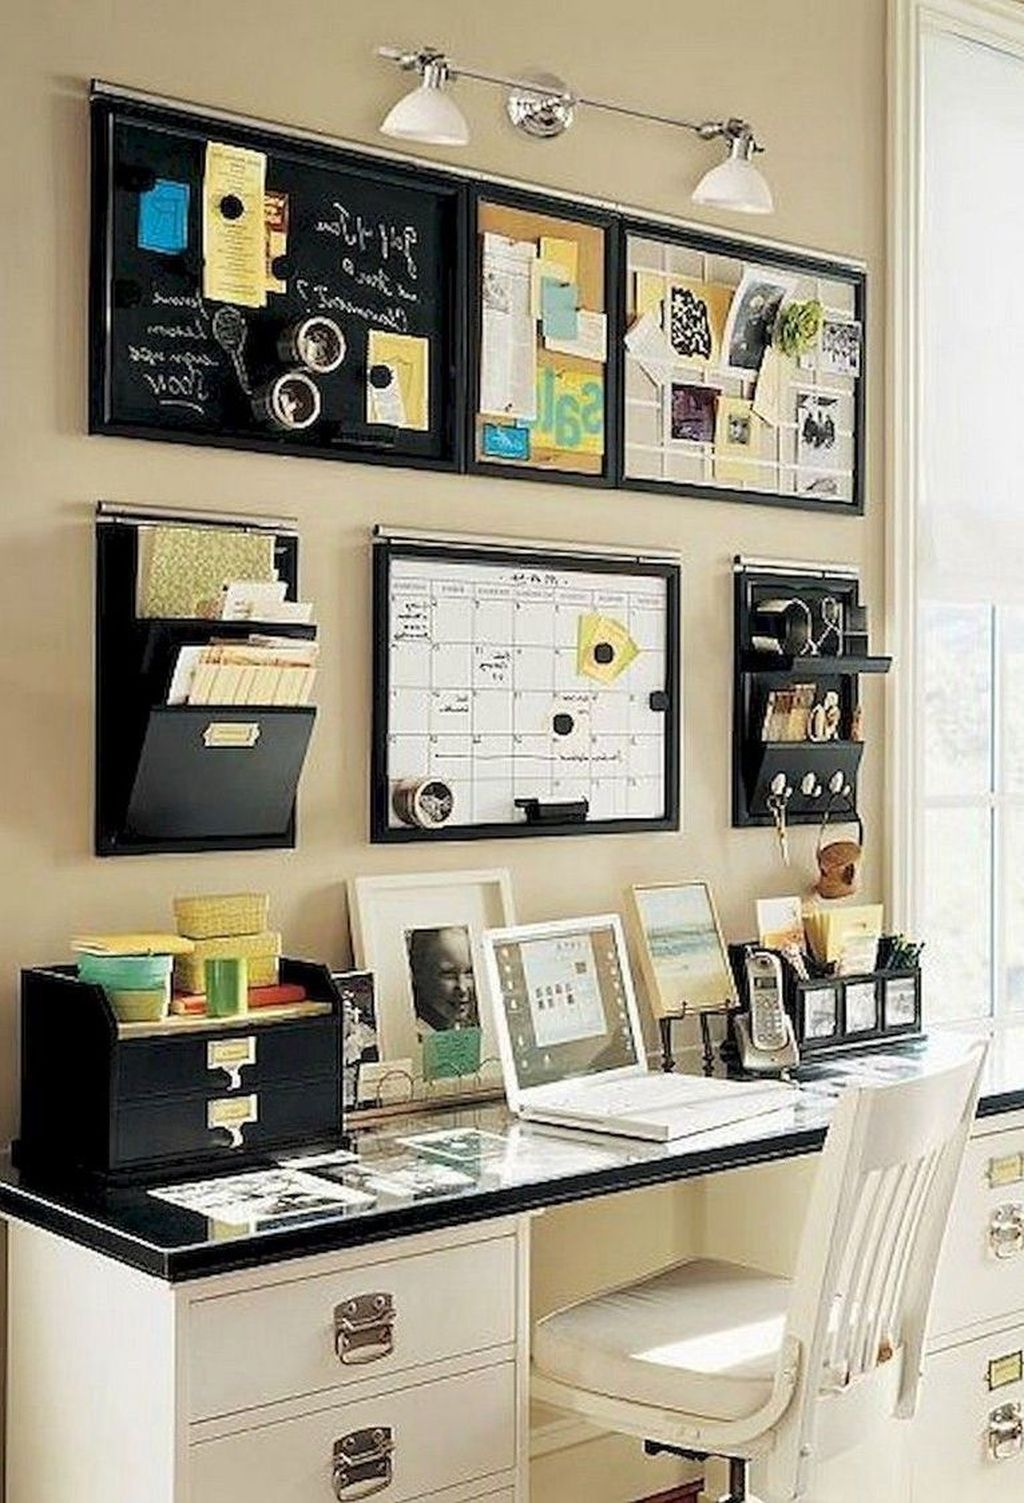 Inspiring Small Office Ideas For Small Space 03